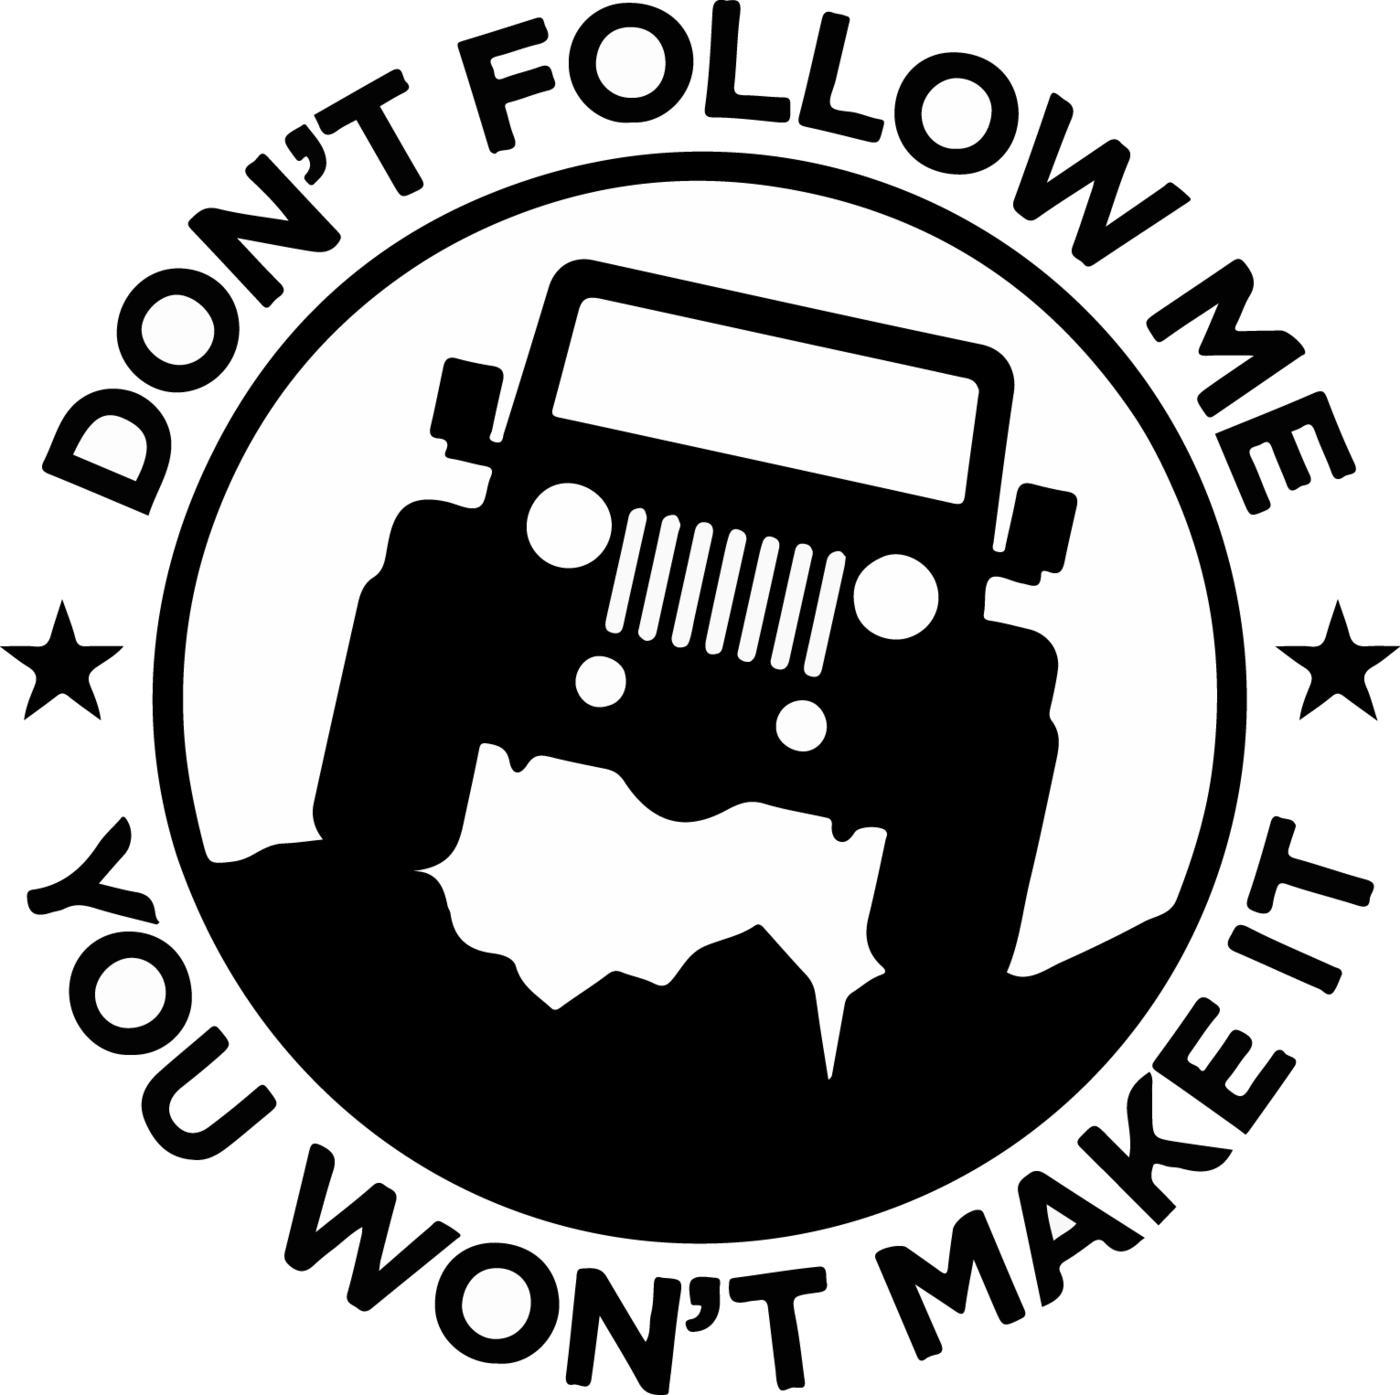 Jeep wrangler clipart clipart images gallery for free download.